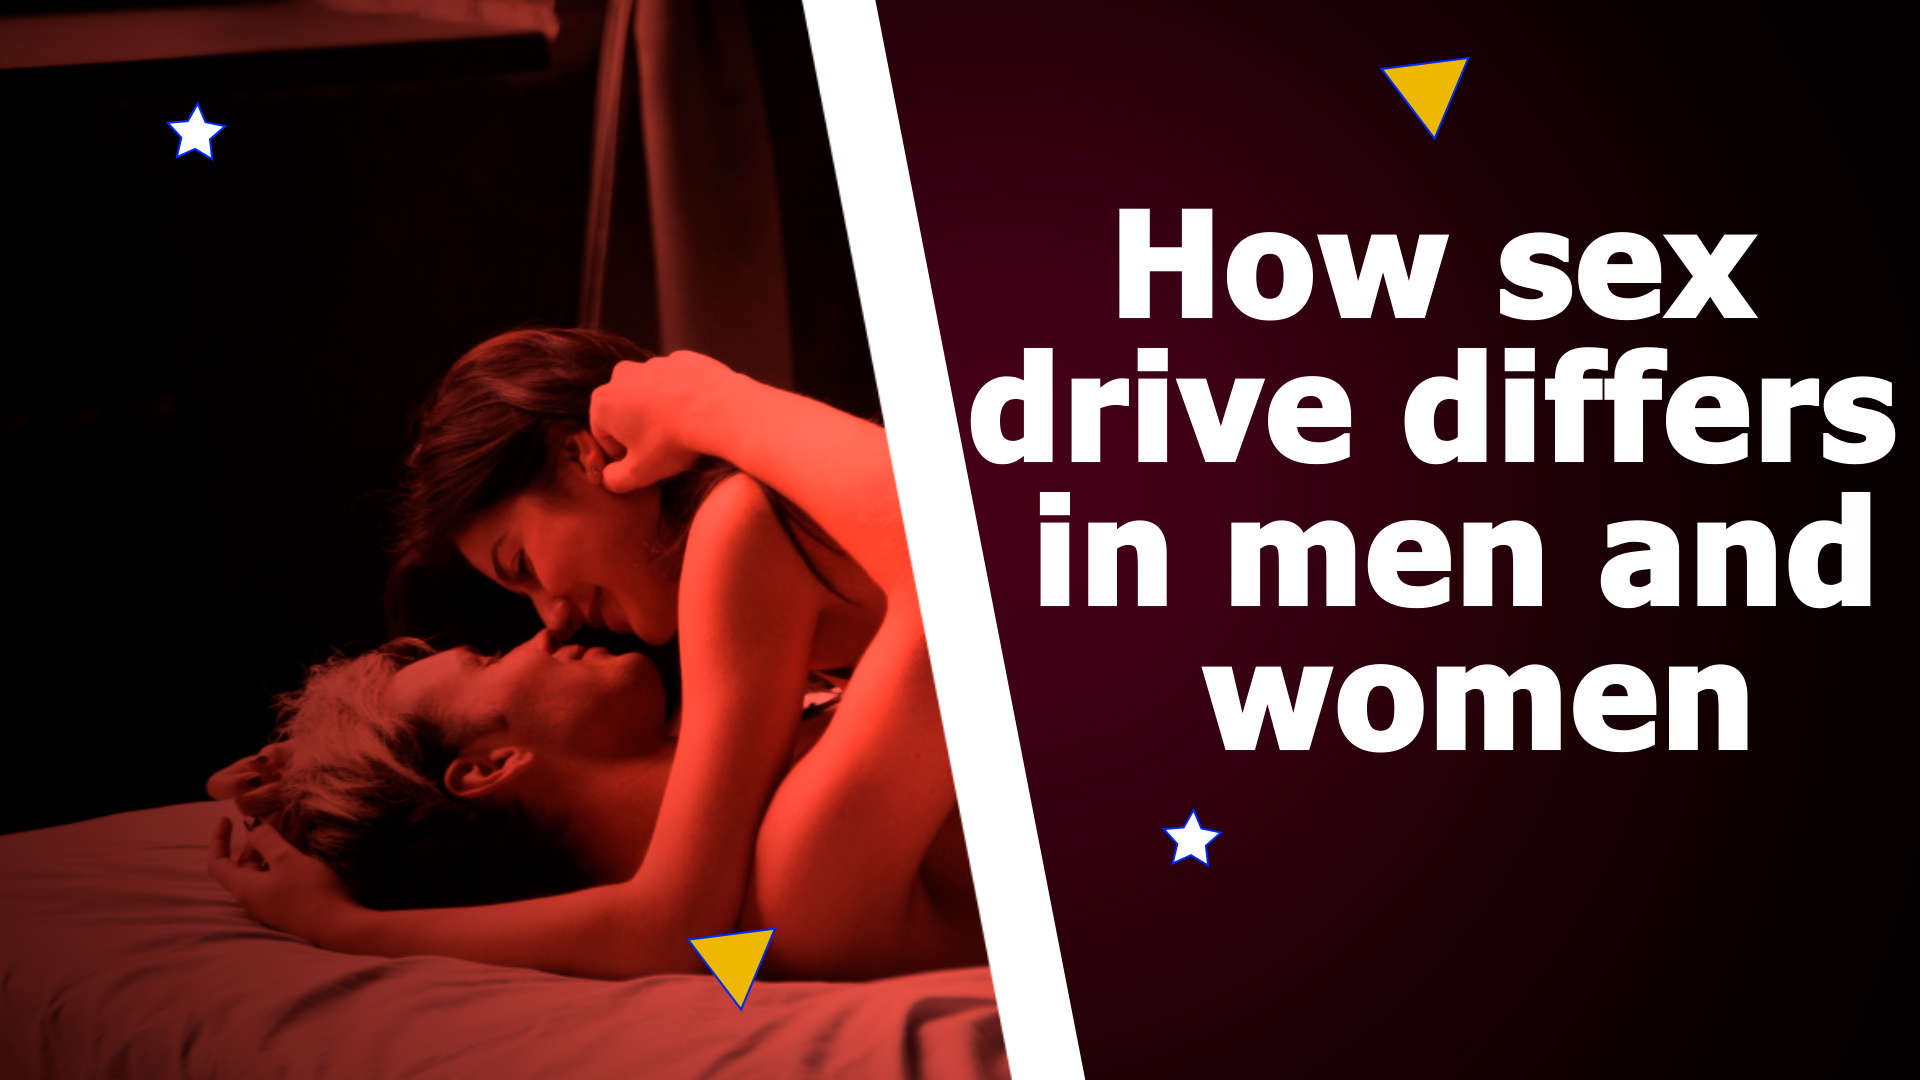 how-sex-drive-differs-in-men-and-women